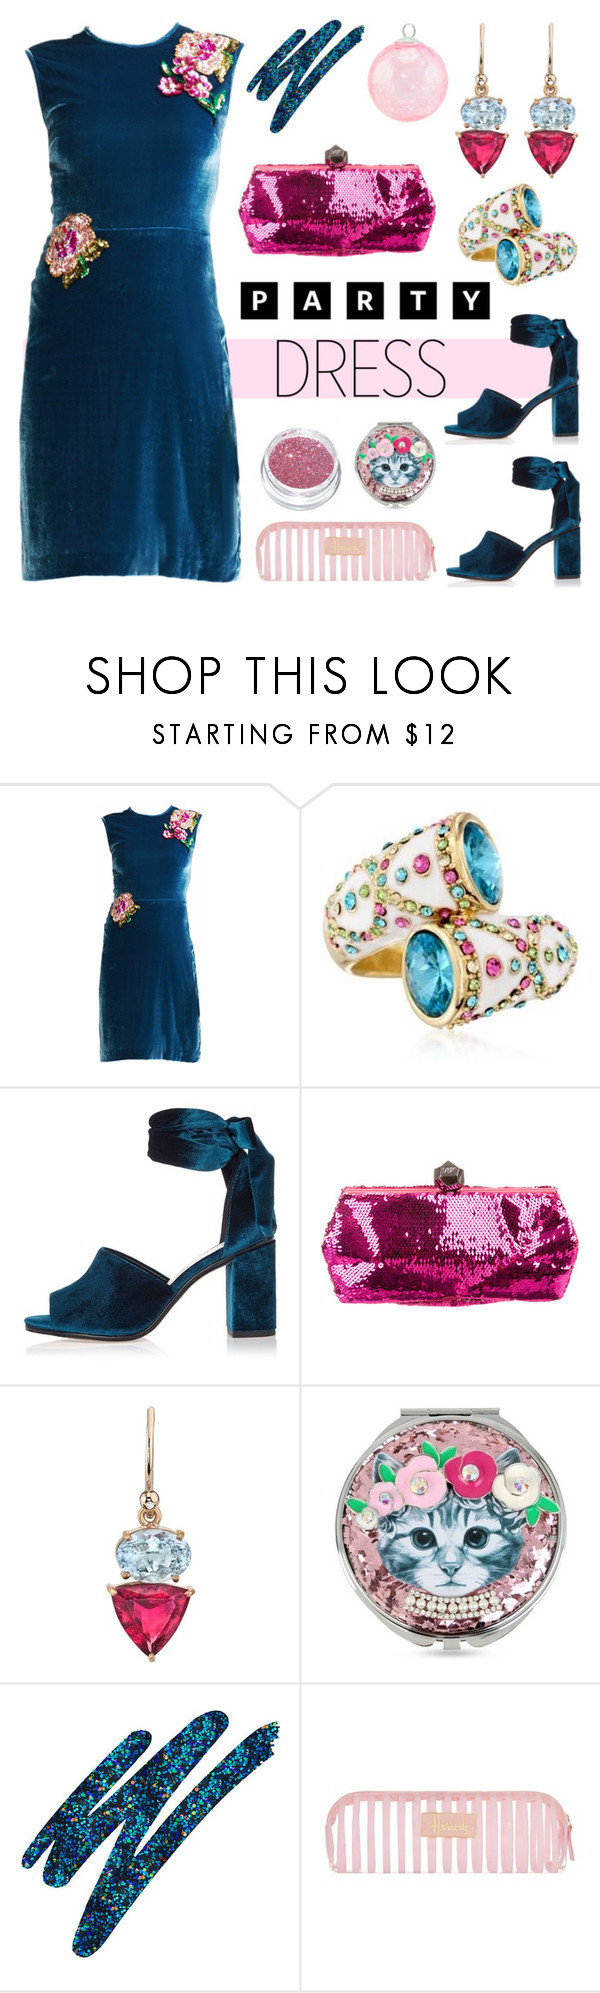 Party Dress | Roger vivier, Cynthia rowley and Harrods